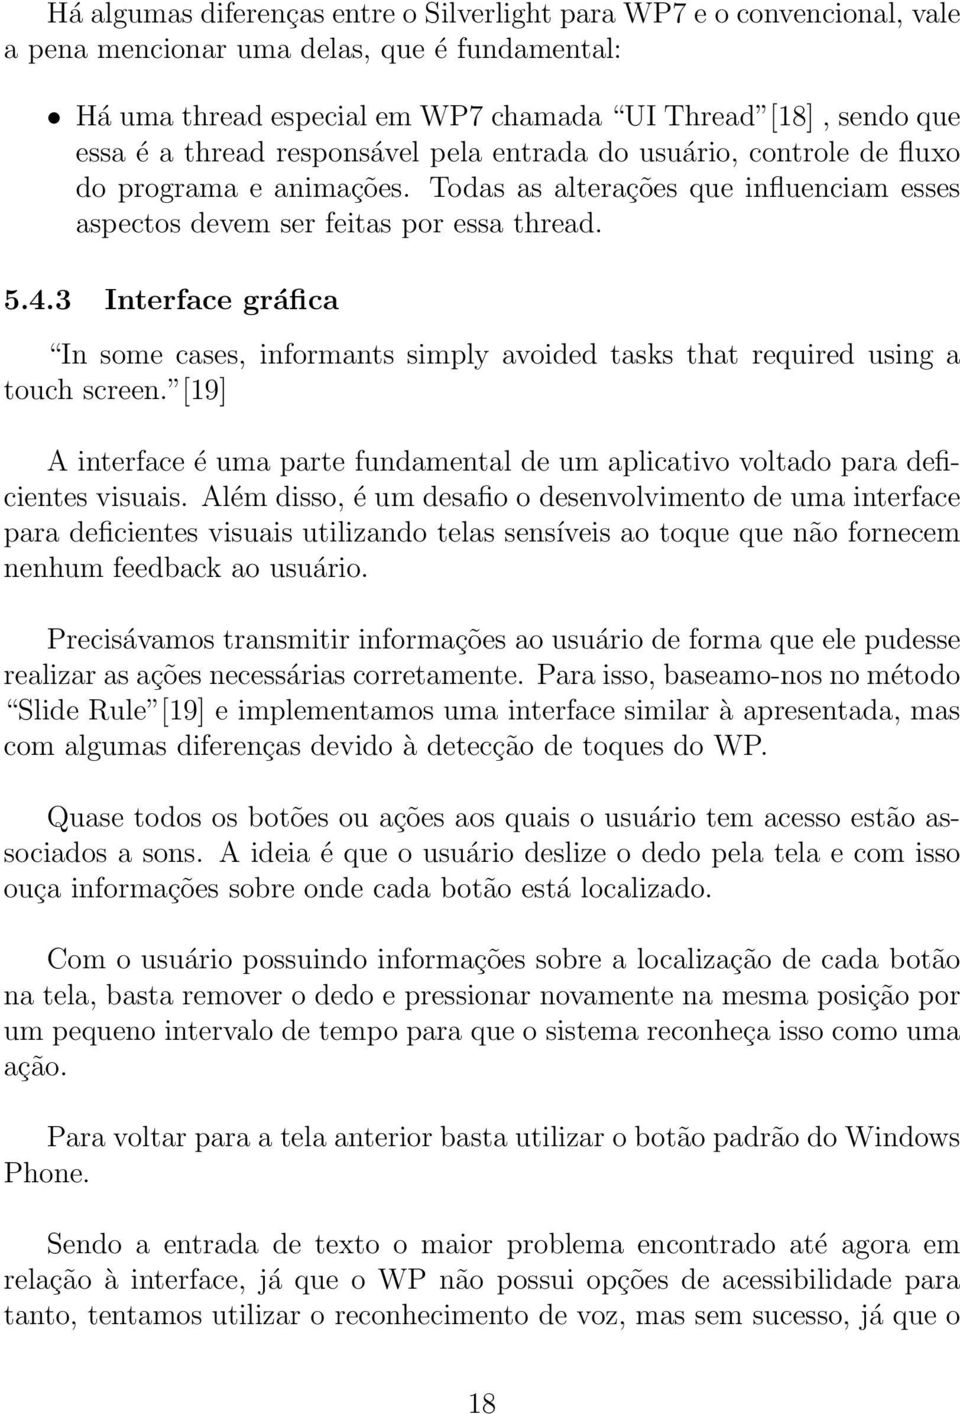 3 Interface gráfica In some cases, informants simply avoided tasks that required using a touch screen. [19] A interface é uma parte fundamental de um aplicativo voltado para deficientes visuais.